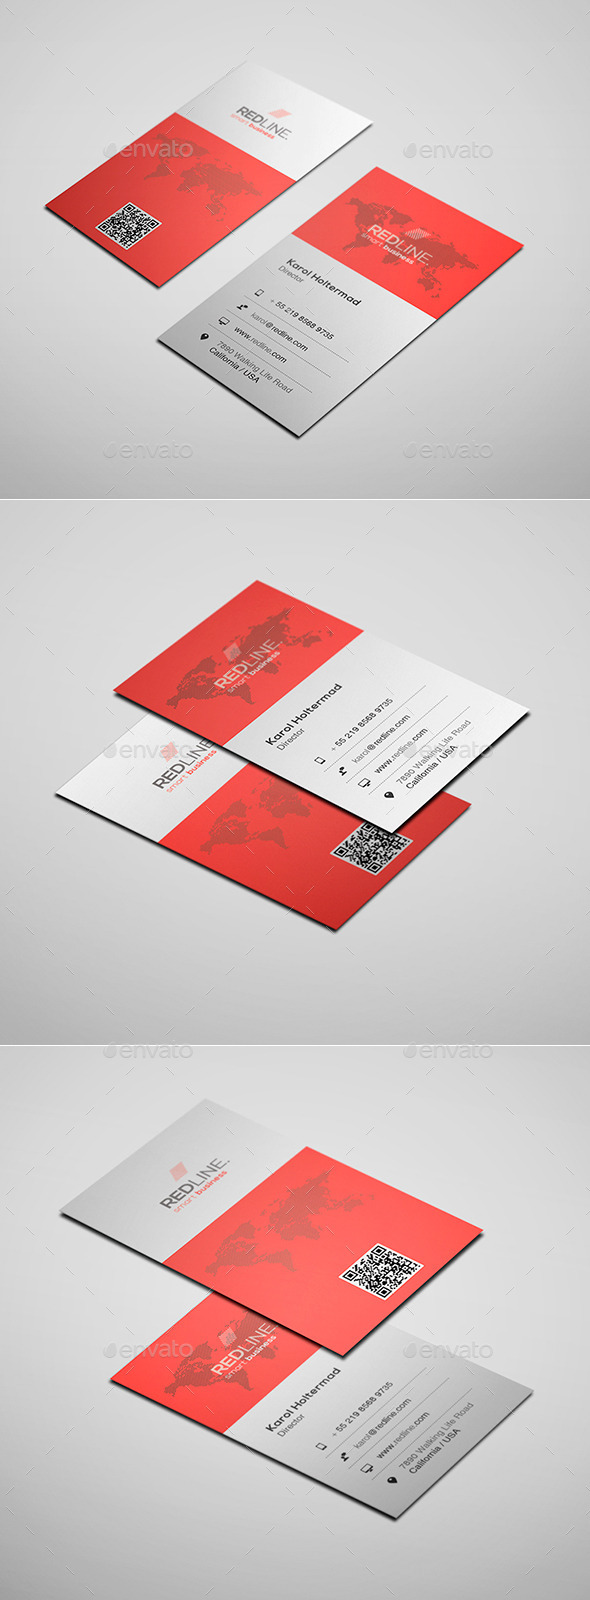 GraphicRiver Business Card Vol 10 11554402